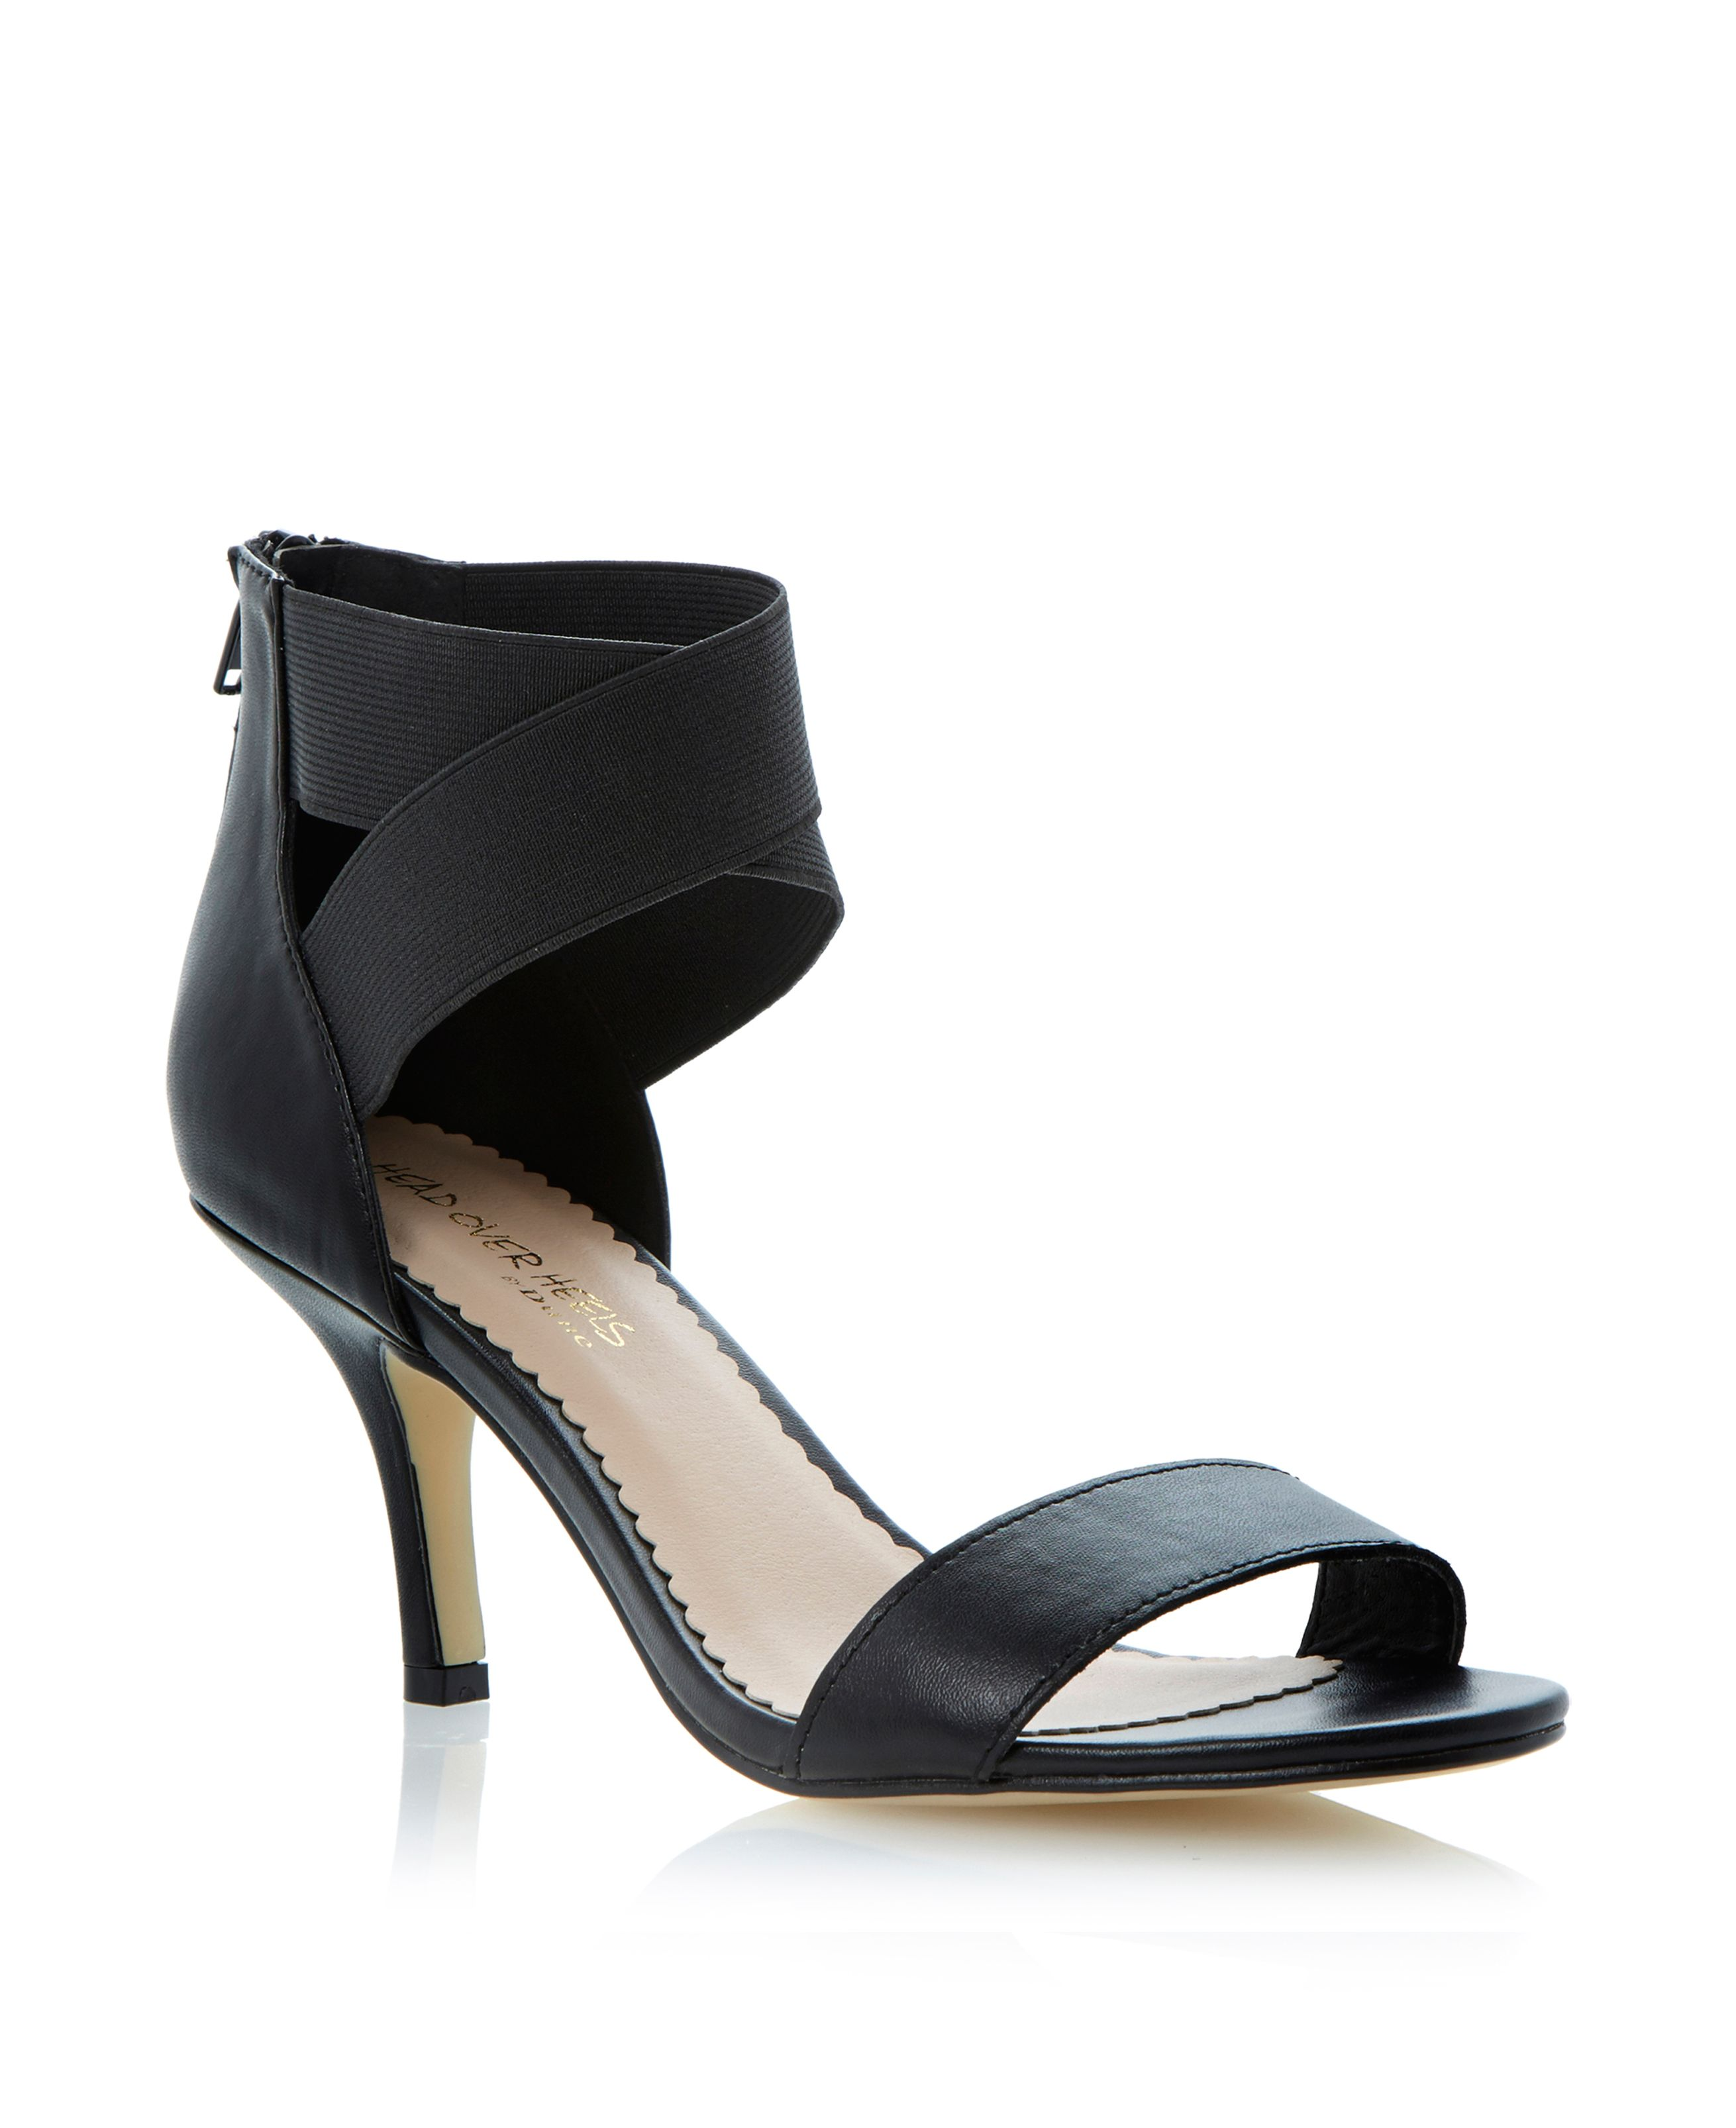 Gatzby stiletto zip sandals